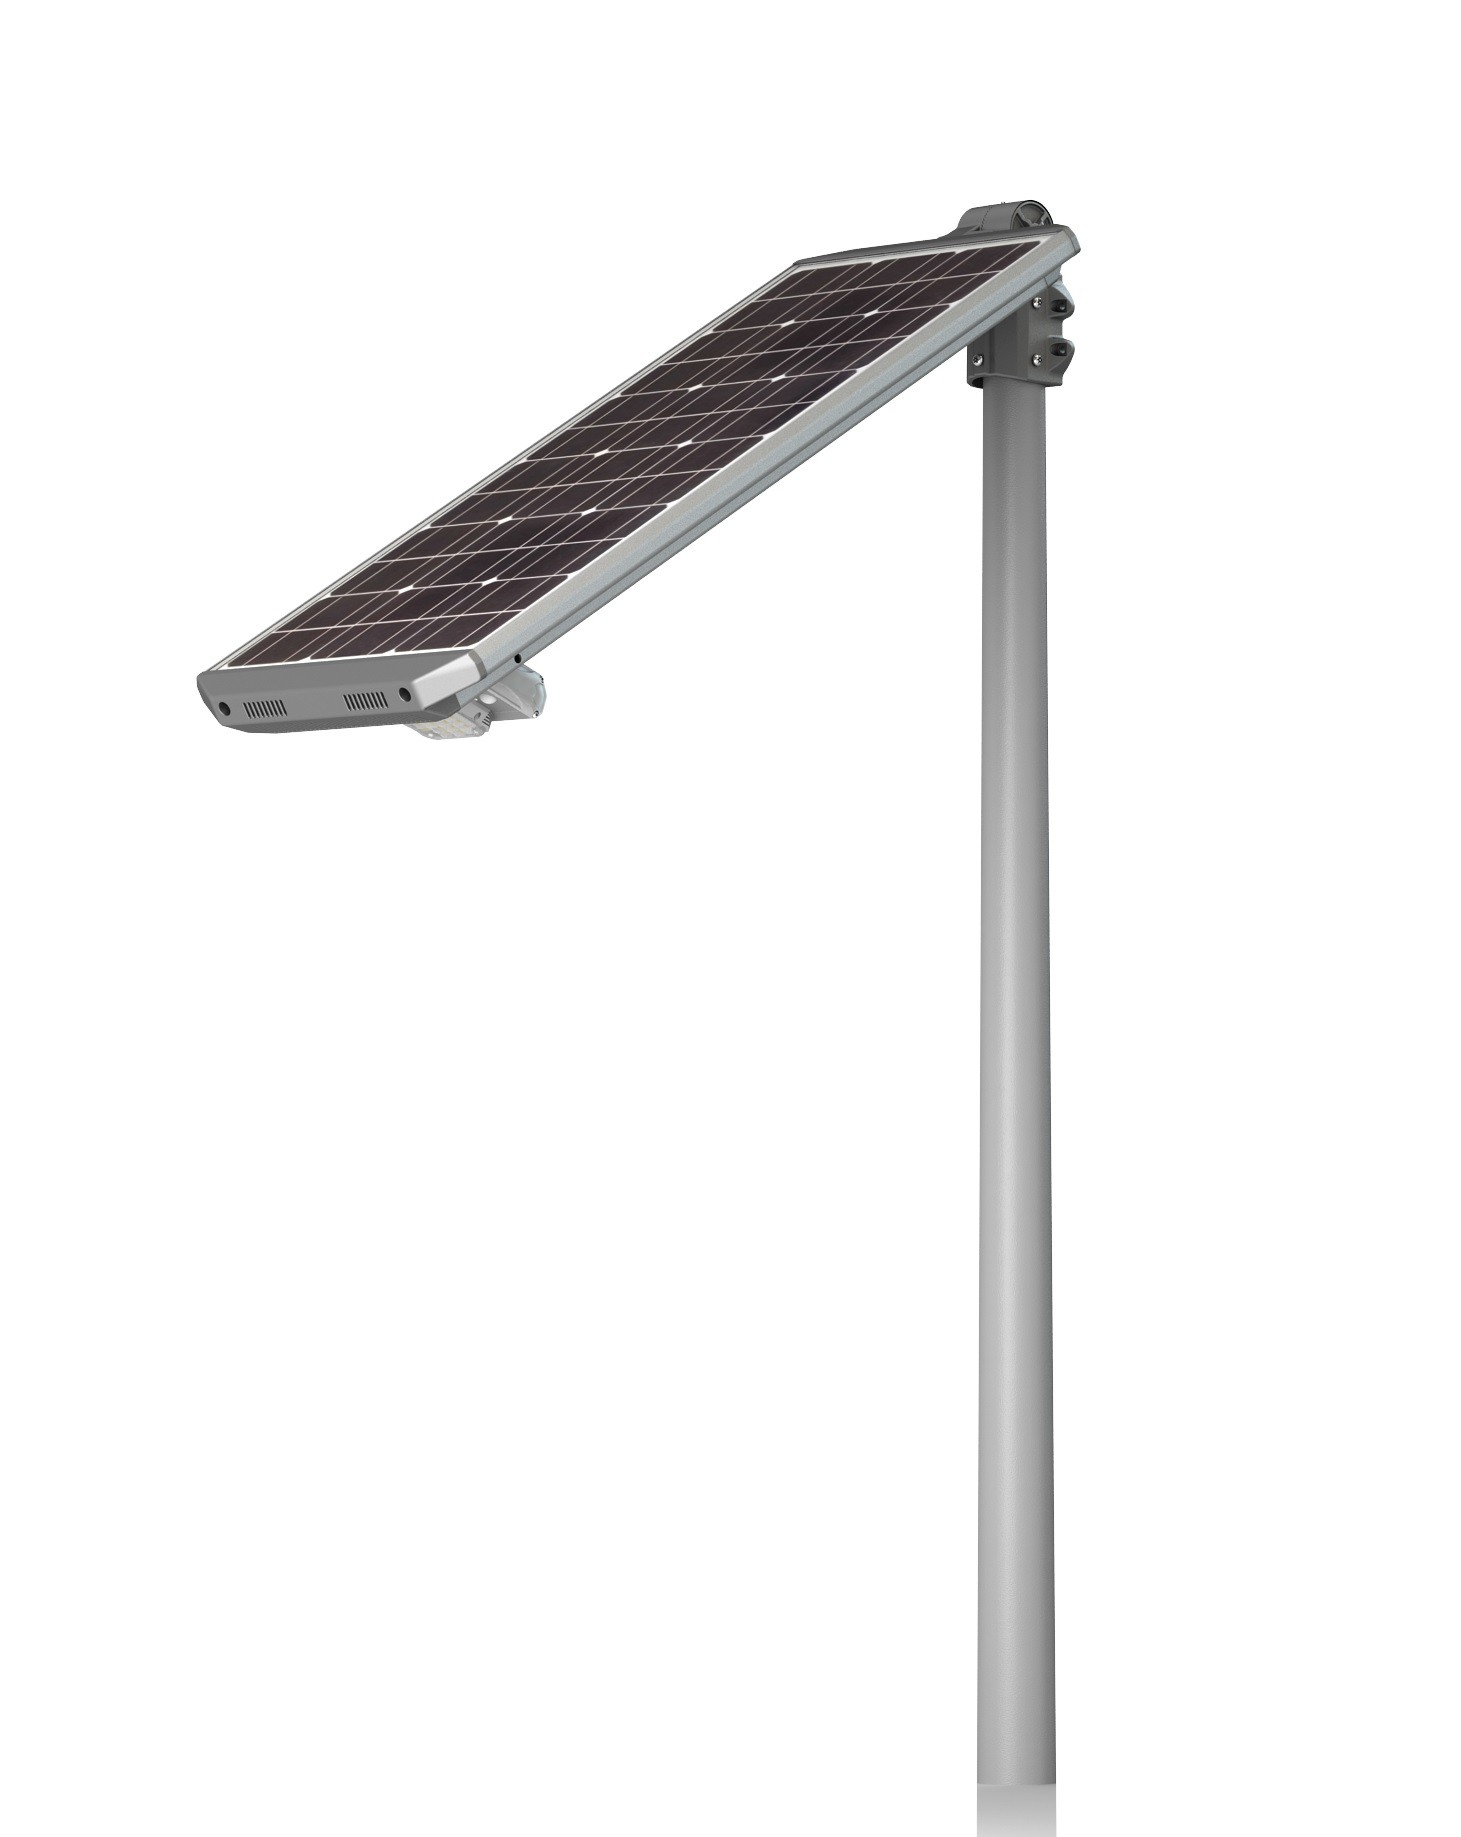 HC831AE3CR8020LMC - Solar Street Light AE3C Swifel type, 80W PV, 20W Cree LED